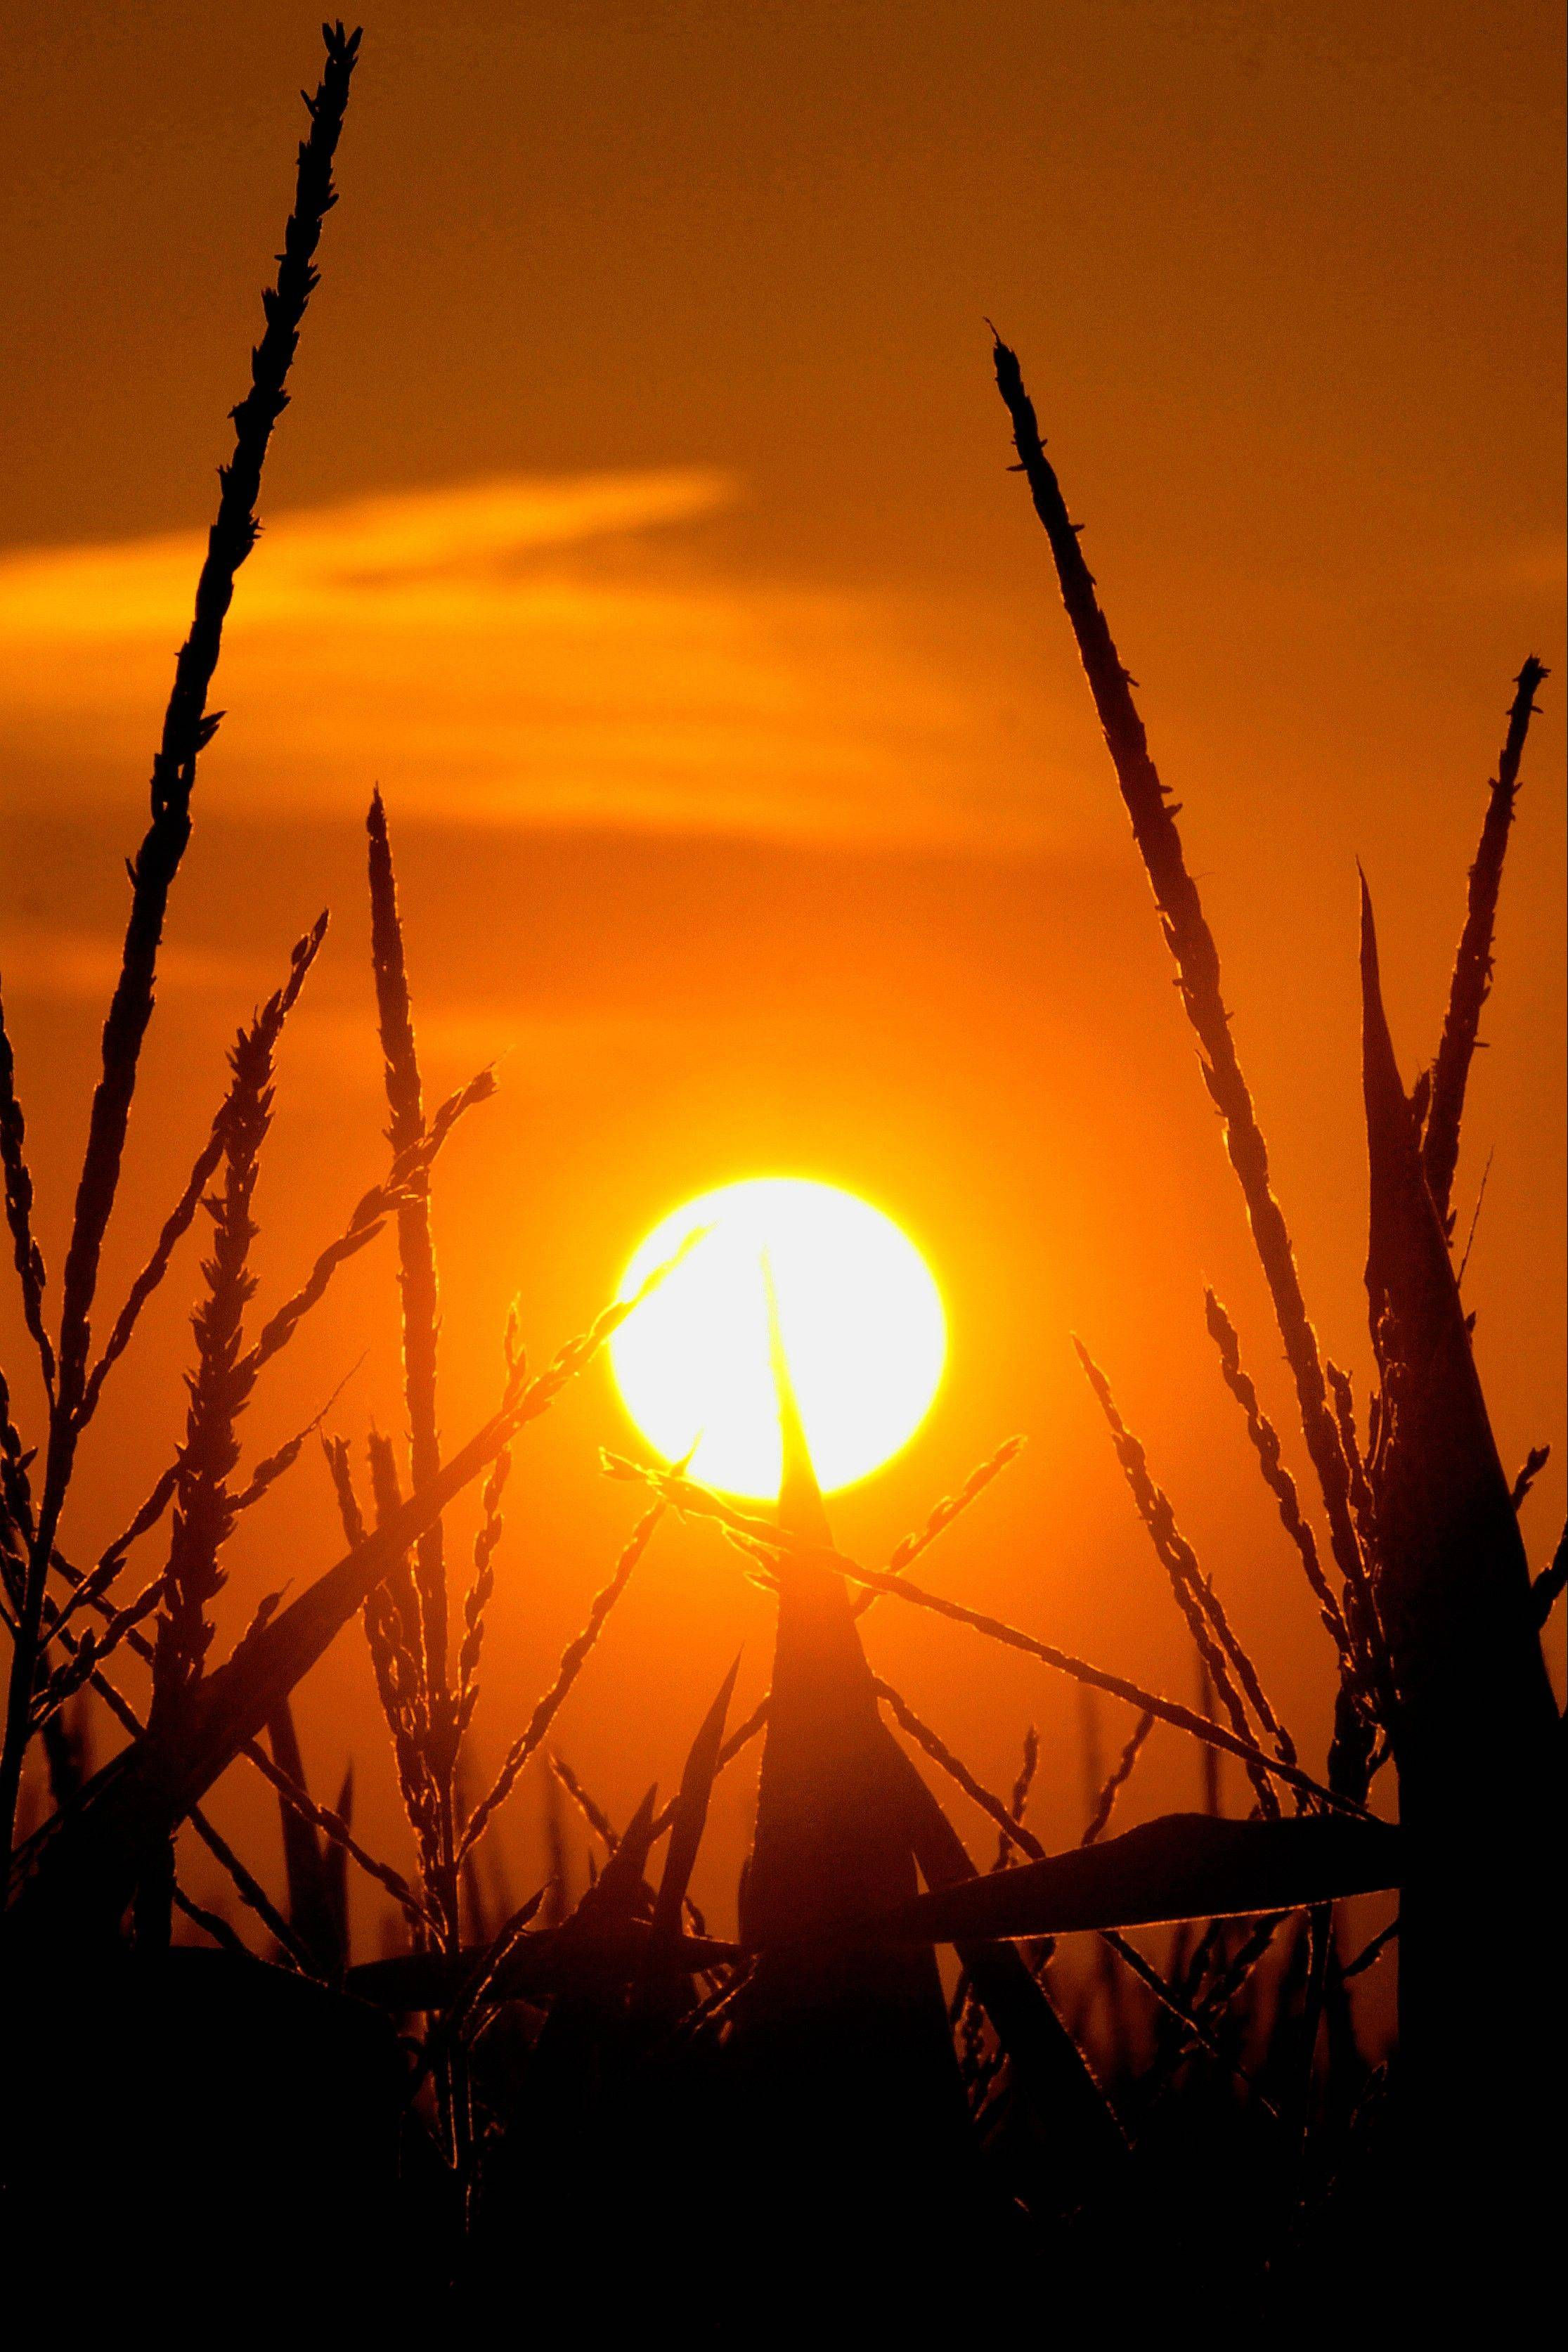 In this July 15, 2012 photo taken in Pleasant Plains, Ill., the sun rises above corn stalks struggling in the heat and continuing drought that has overcome most of the country. The drought that devastated Illinois agriculture industry, was voted the second most important news story in the AP's annual survey of its Illinois member editors and staff.